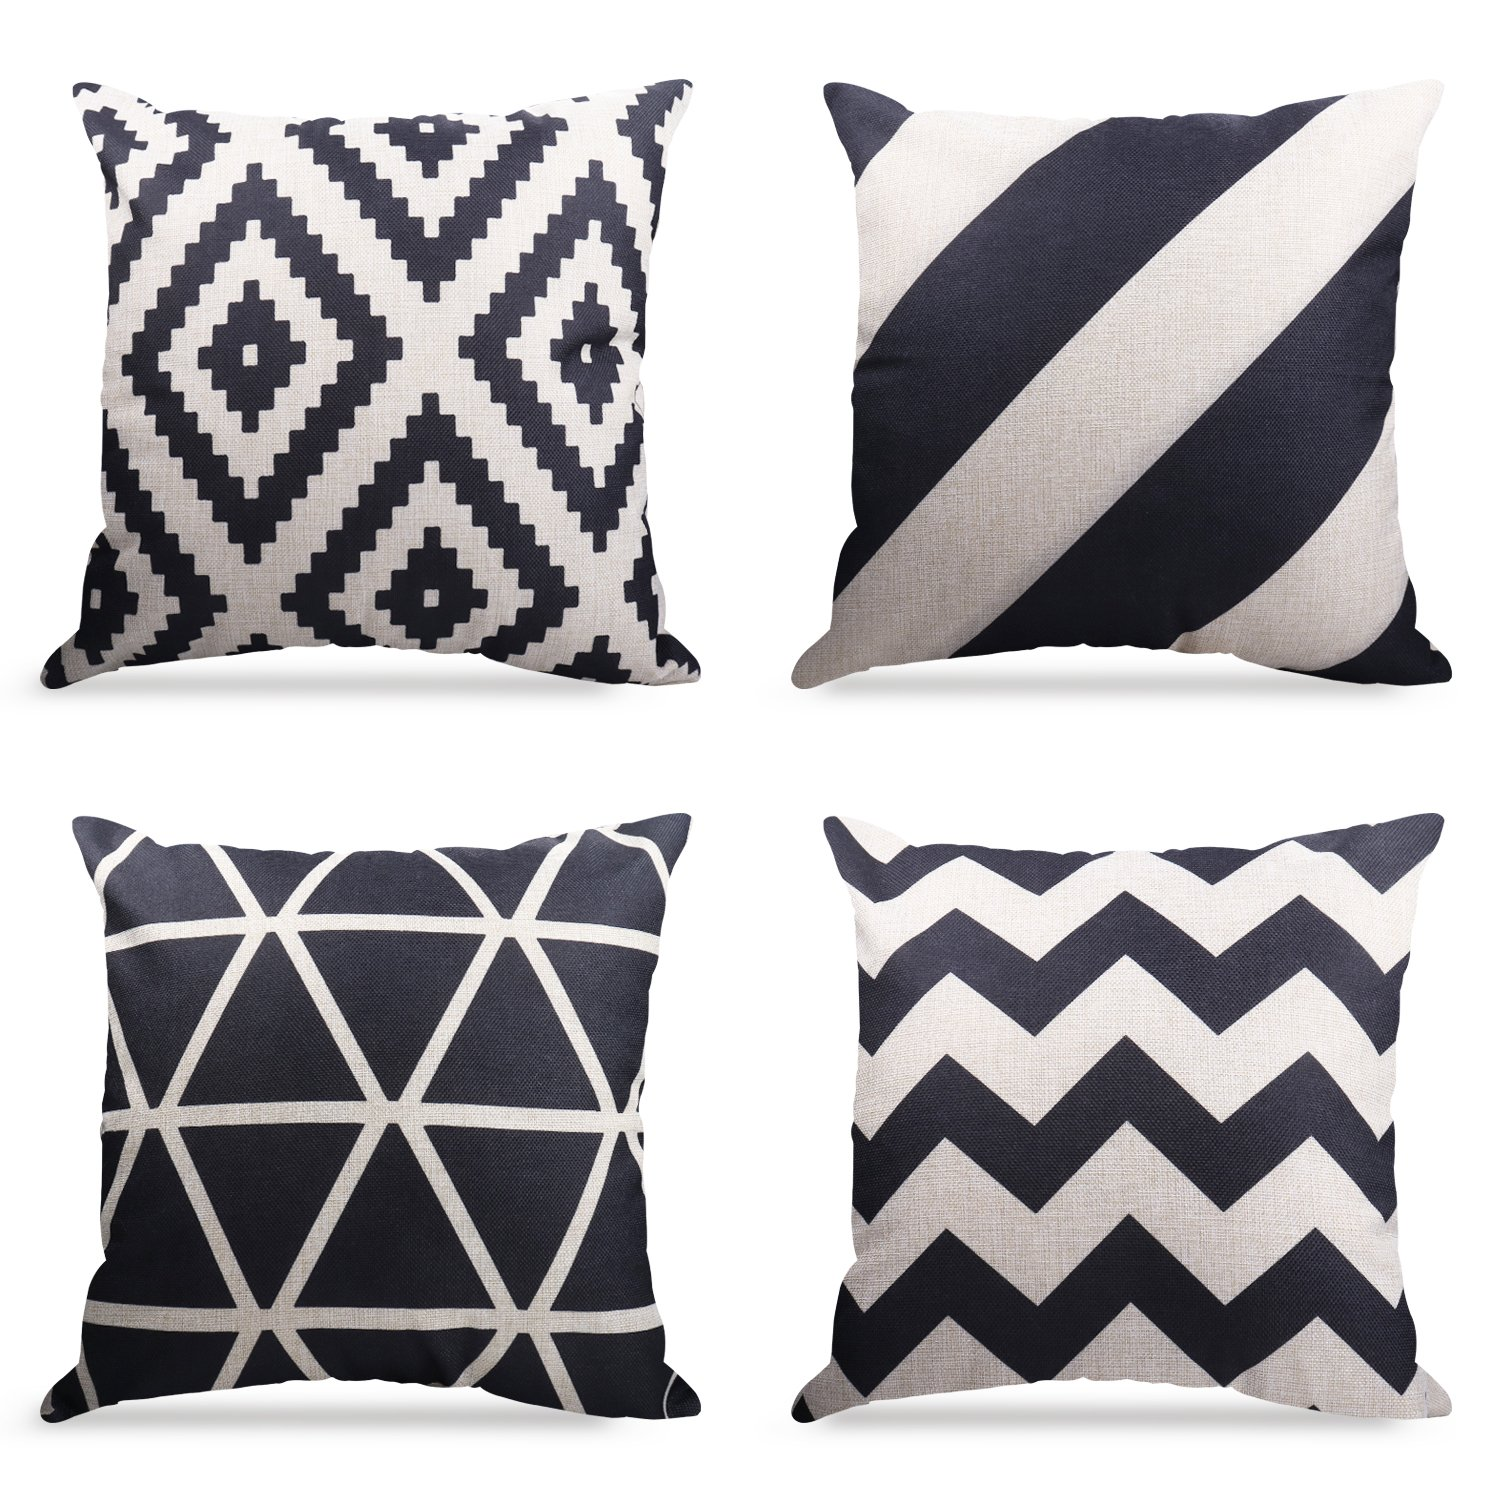 Geometrict Pattern Throw Pillows Covers 18 x 18 Inch Cotton Linen Cushion Covers for Couch Decorative Set of 4